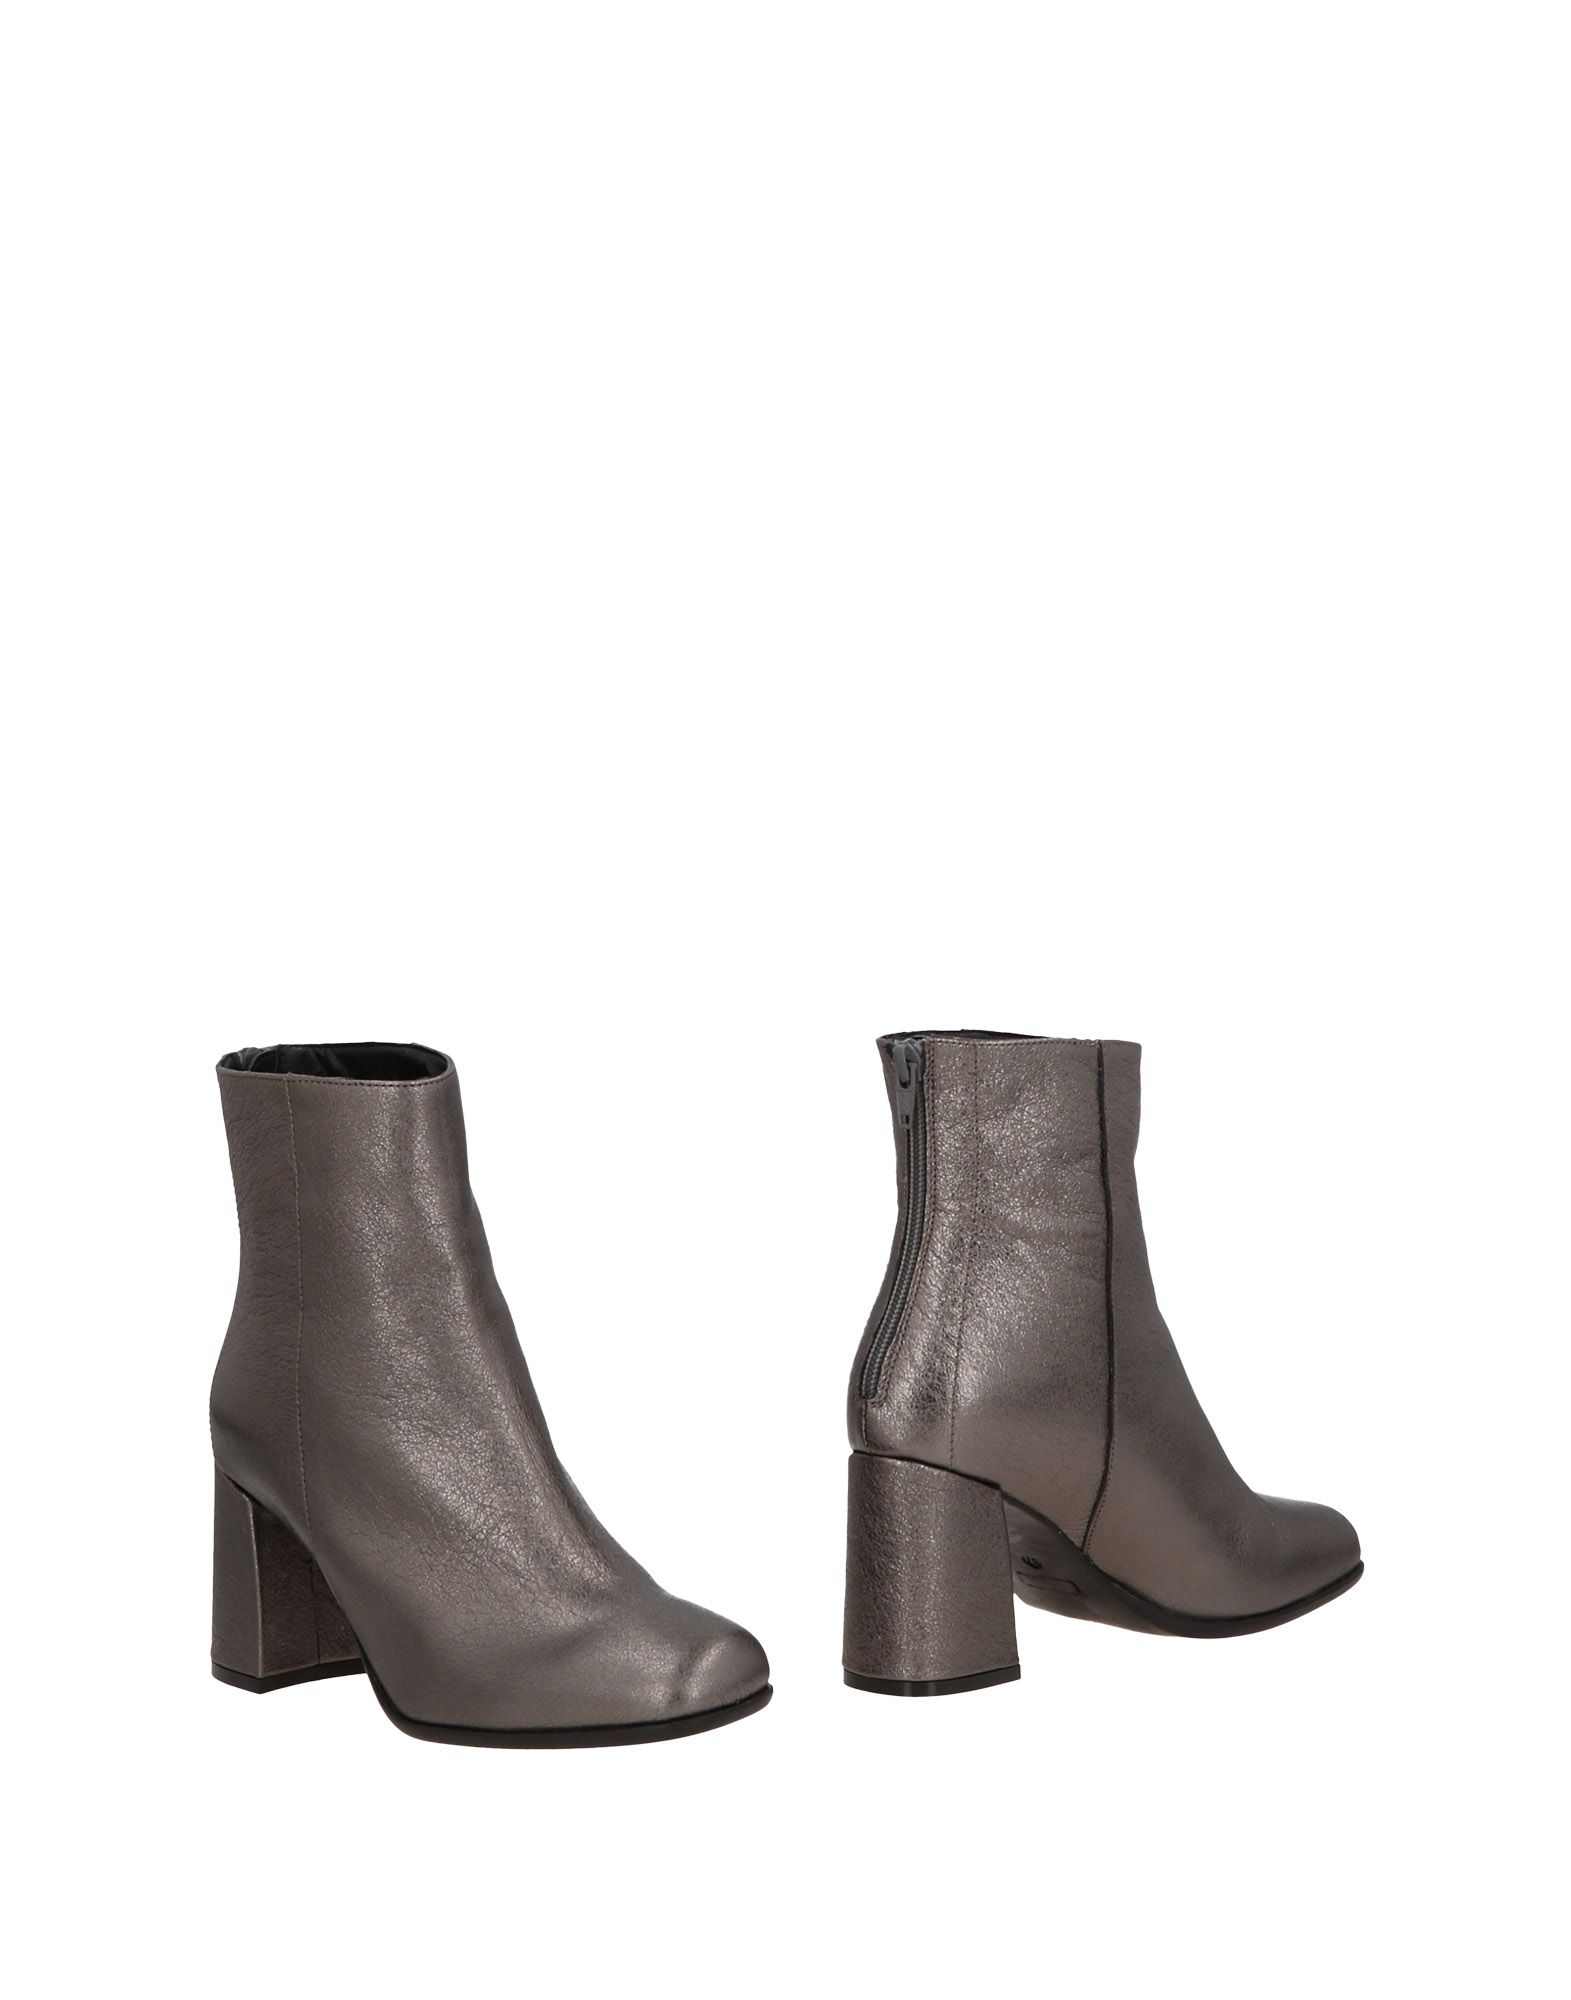 Bottine Formentini Femme - Bottines Formentini Plomb Super rabais